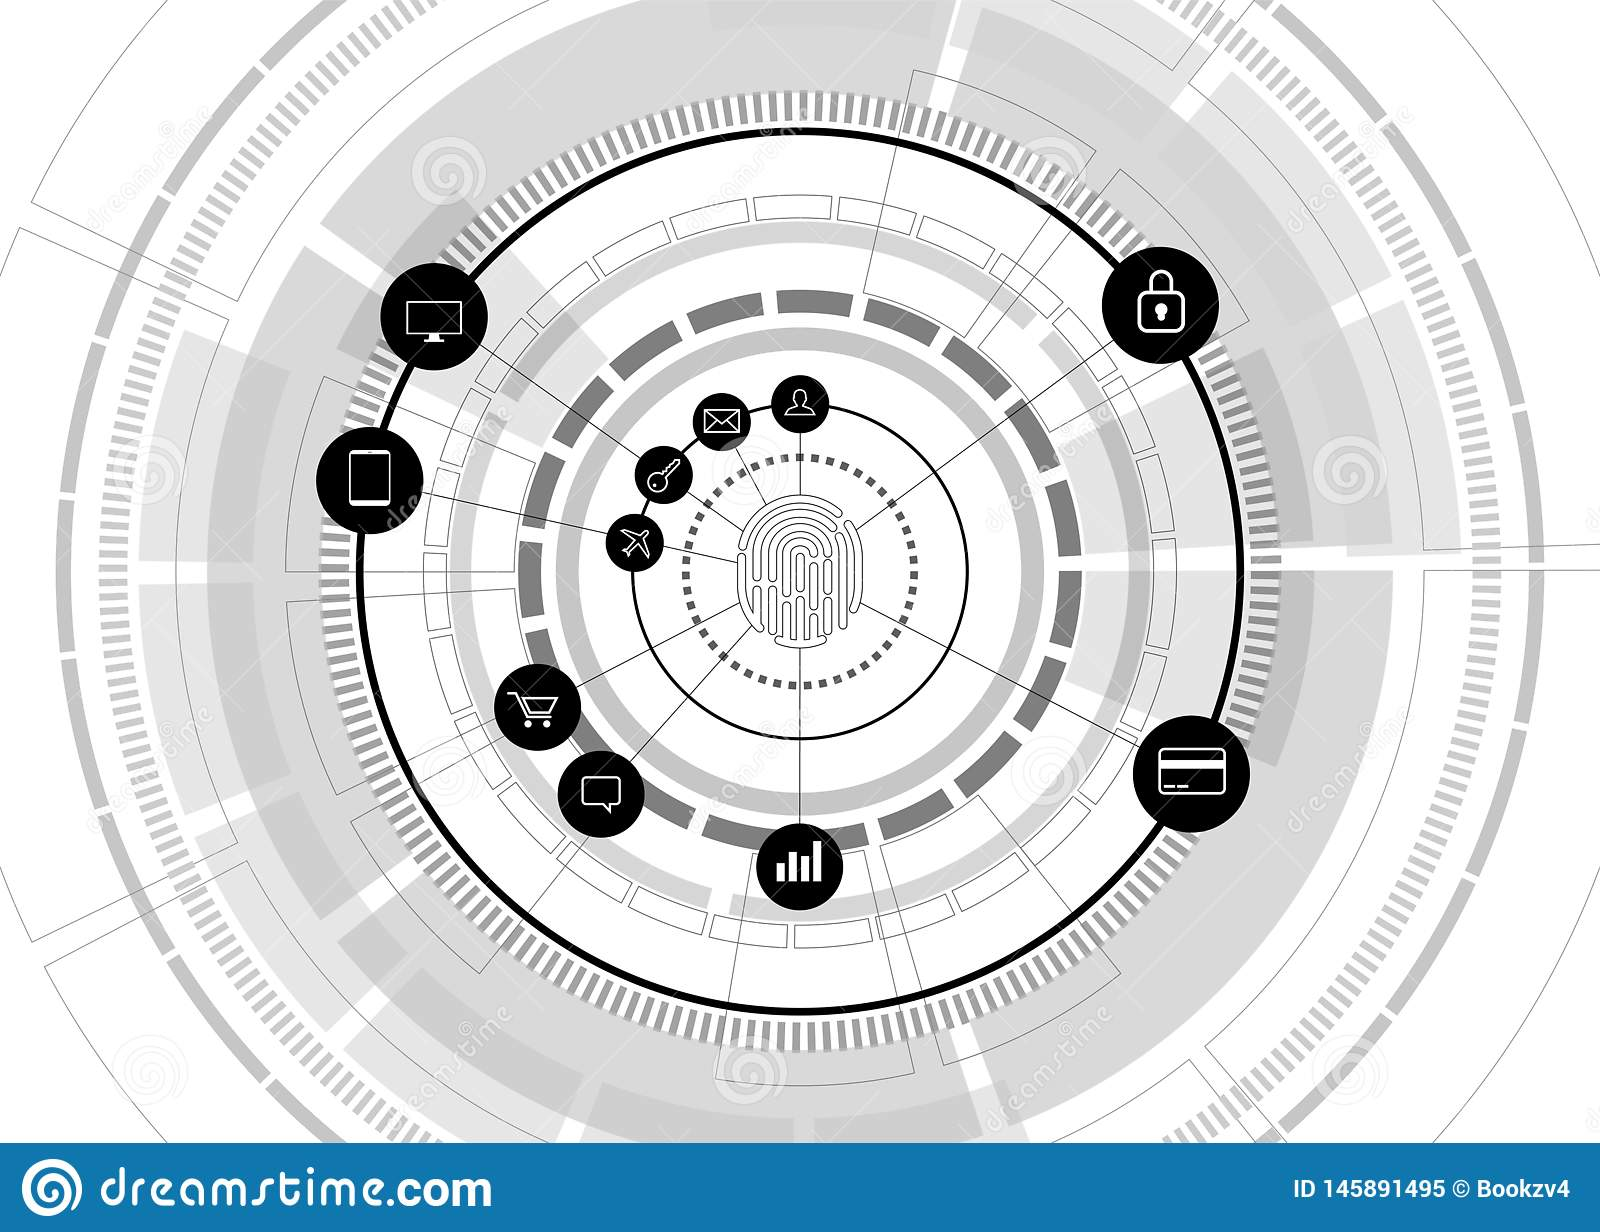 Vector thumbprint icon with functional icon on futuristic wheel. sci-fi background concept for finger scan technology and privacy. Access royalty free stock photo